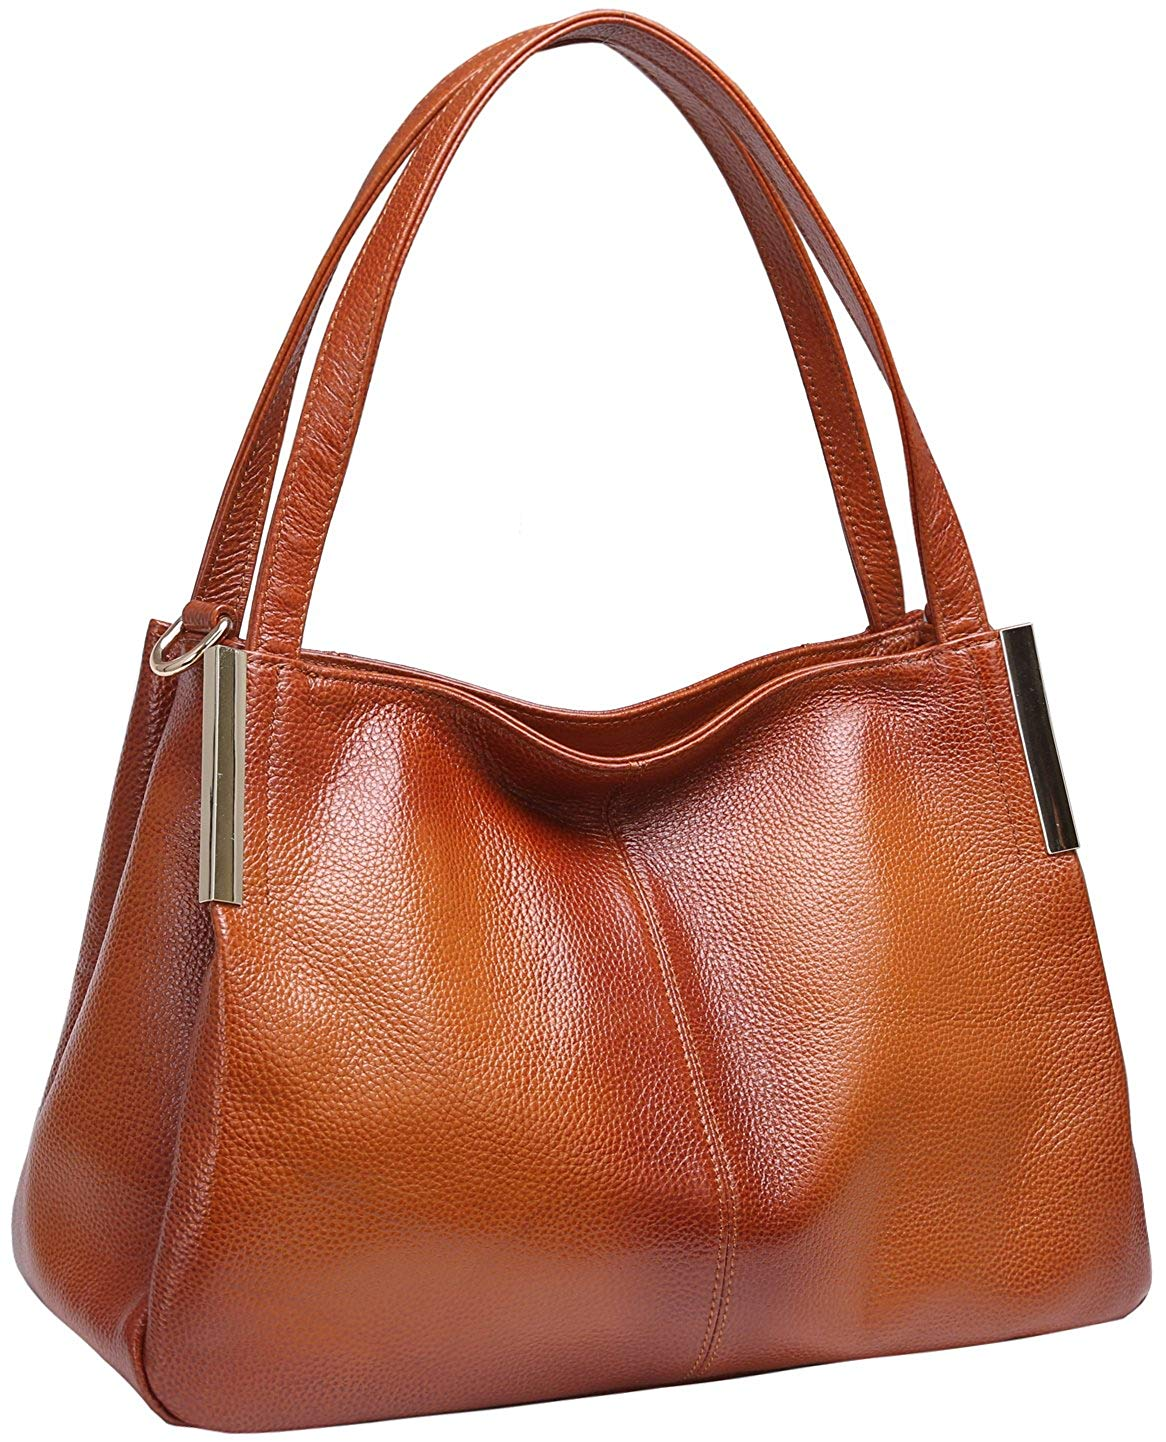 Heshe Women's Leather Handbags